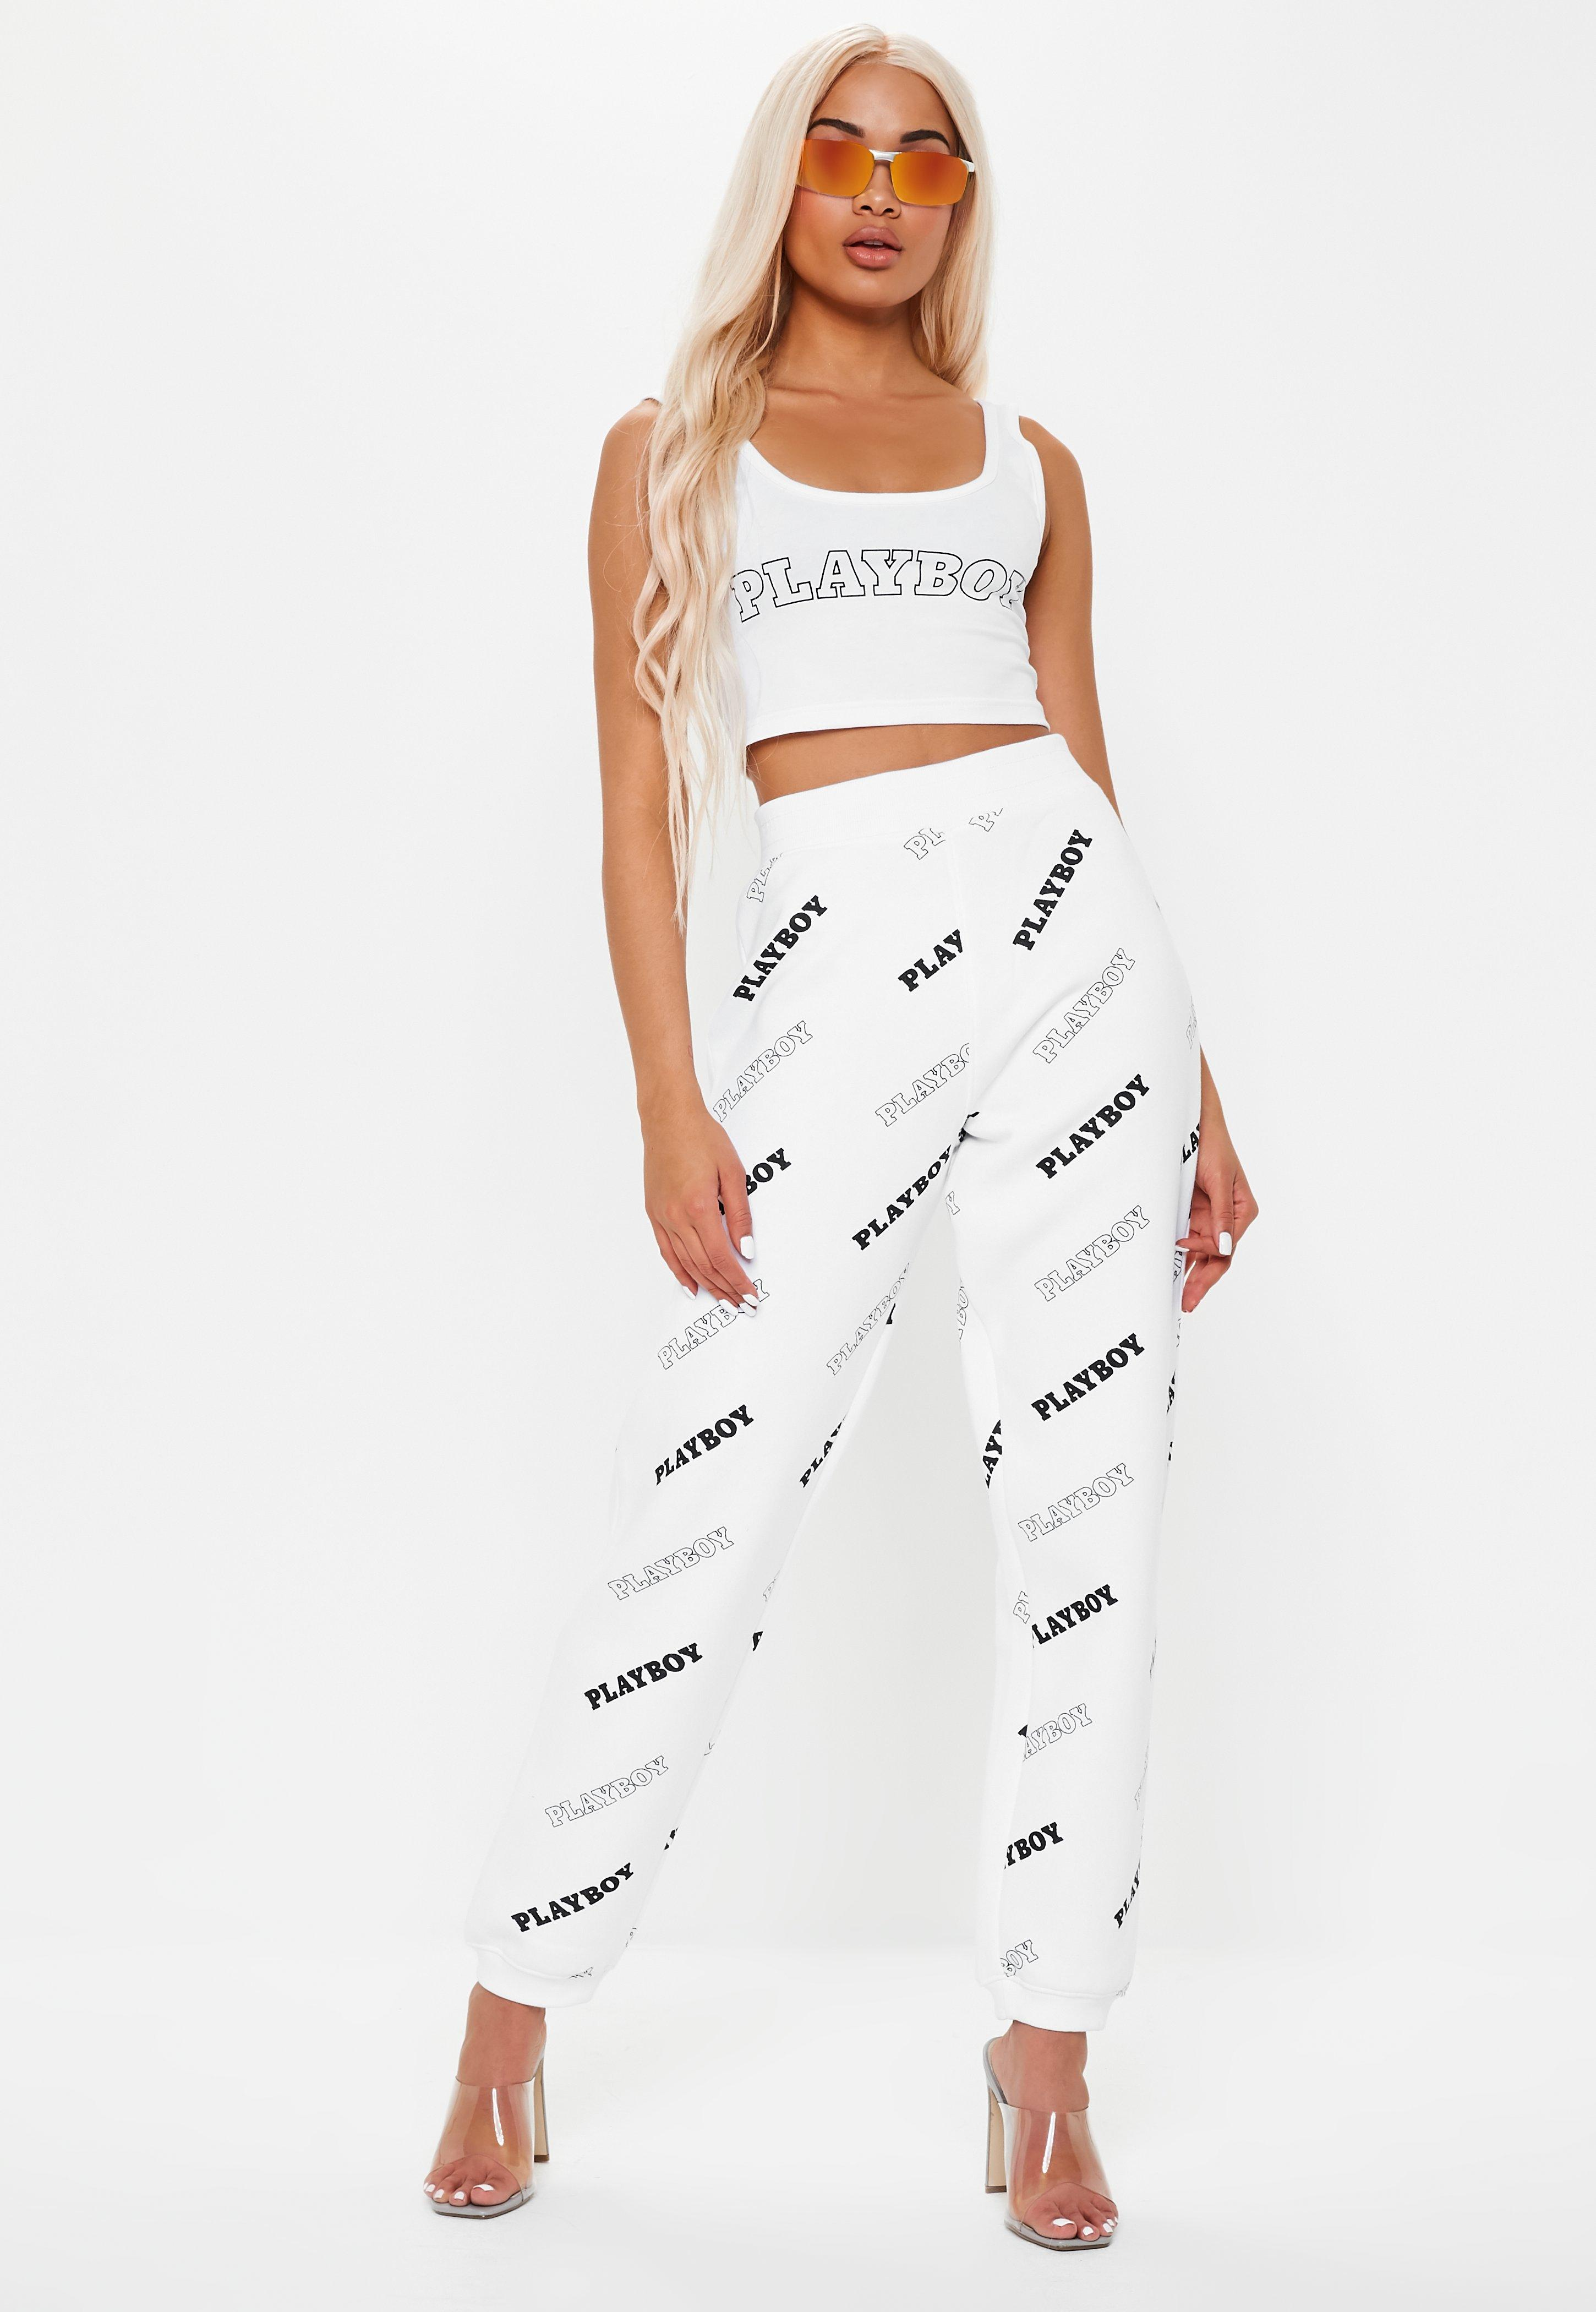 eb3dd6bea6d Playboy Clothing | Playboy T-Shirts, Necklaces & Tracksuits – Missguided